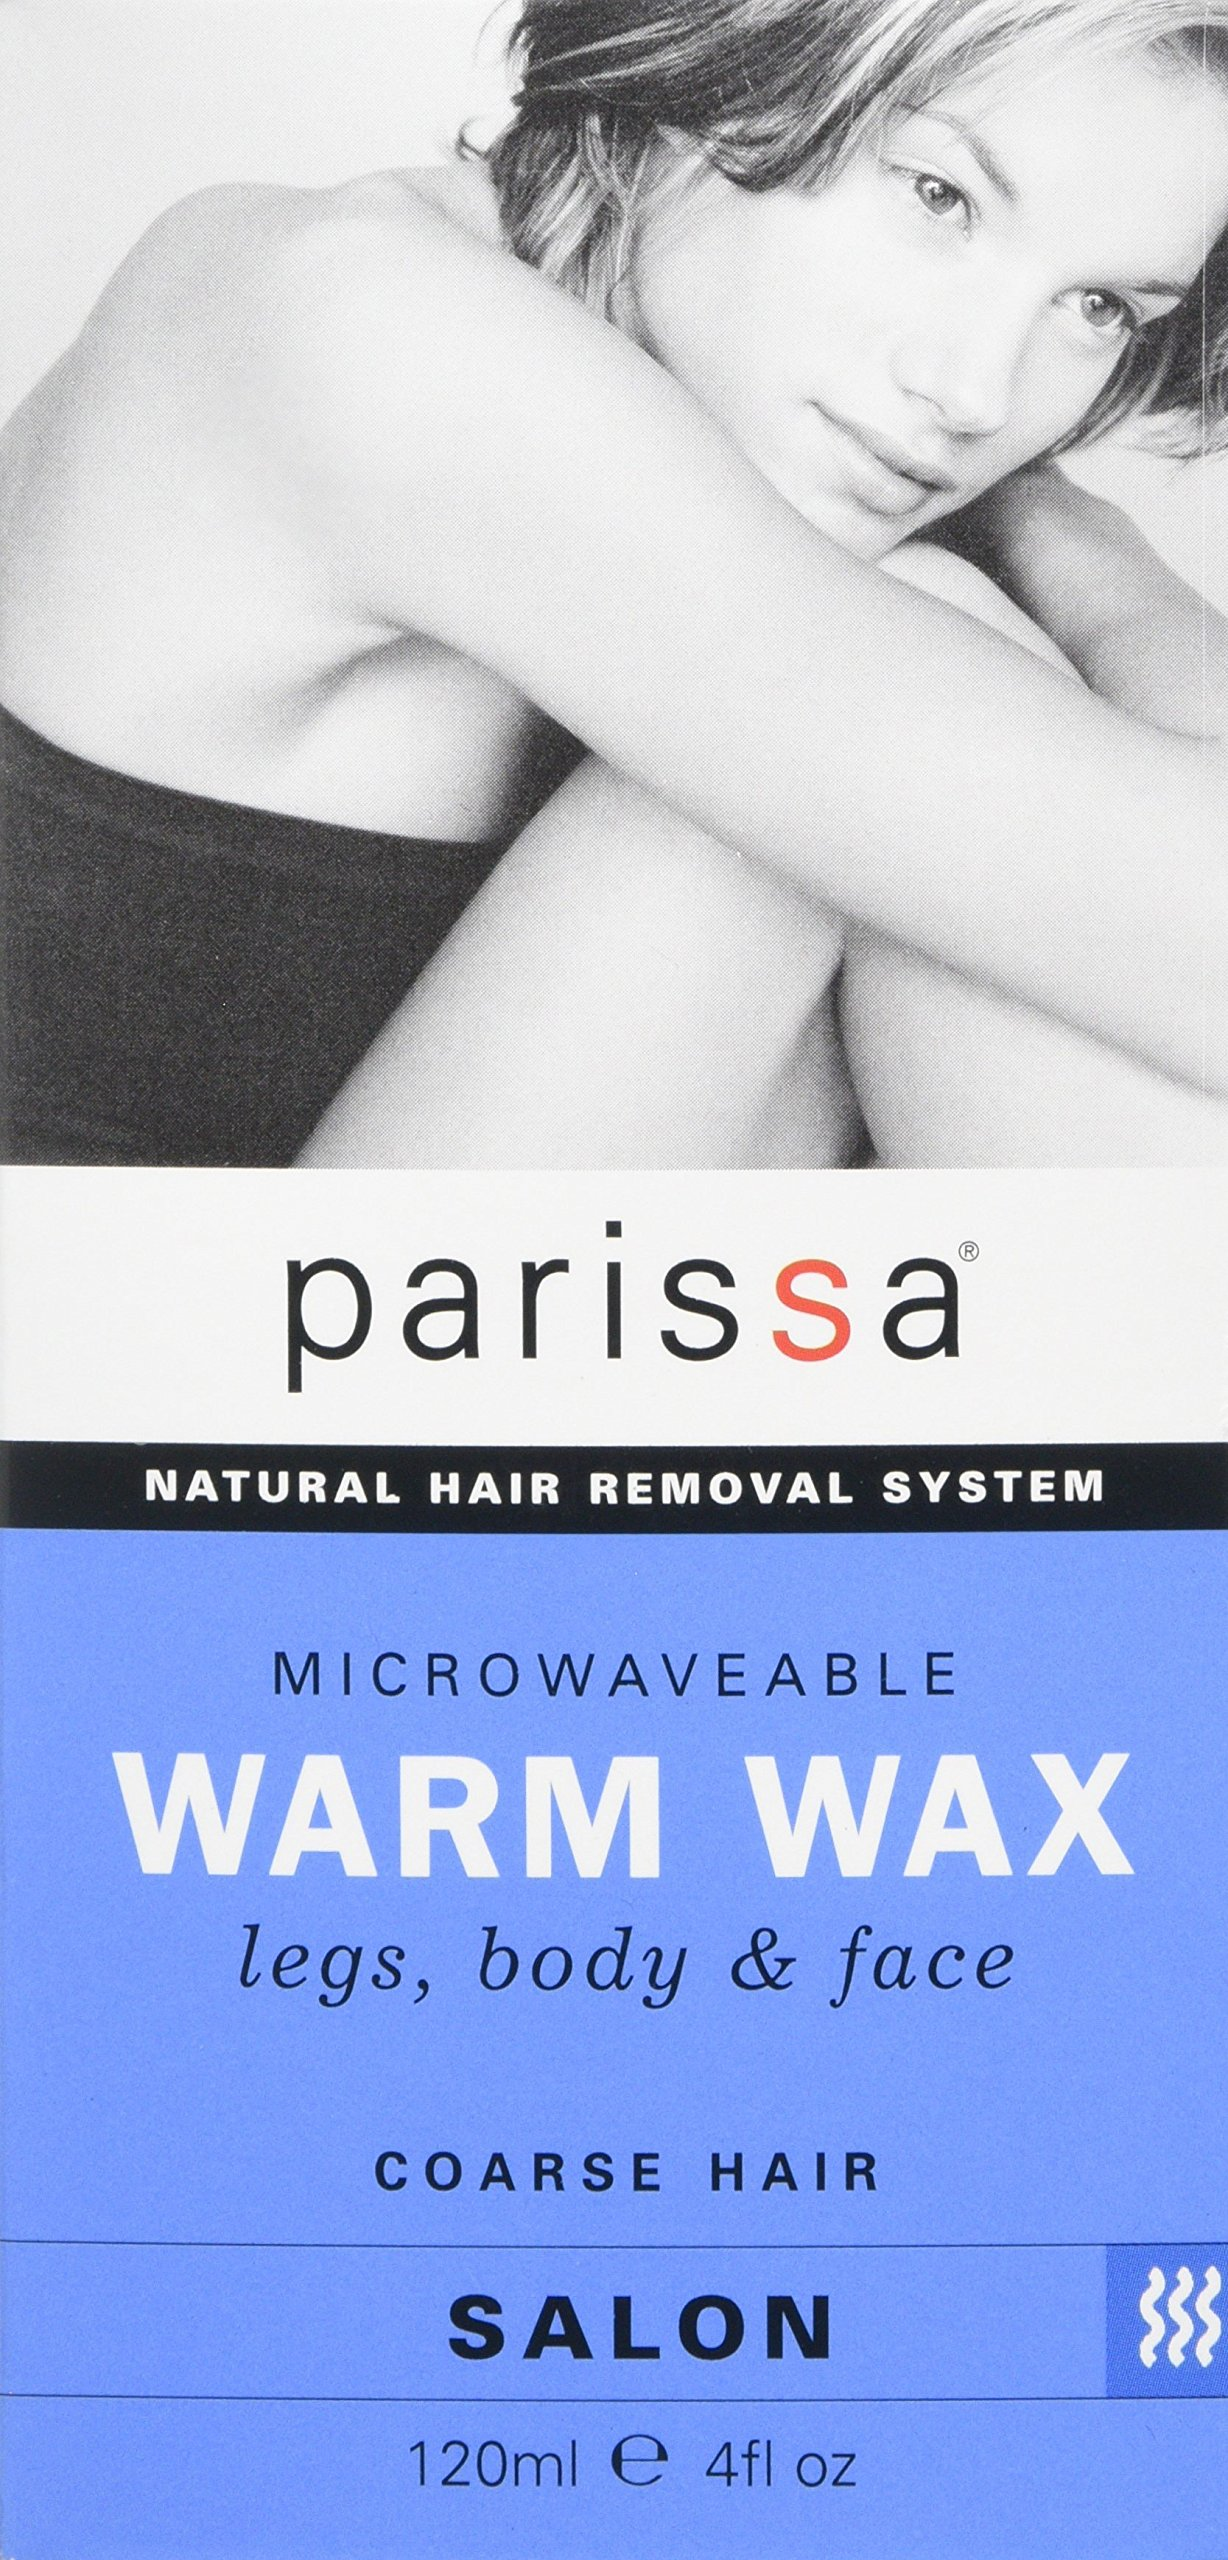 Parissa Warm Wax Hair Removal Waxing Kit, Professional Strength for Body Waxing, 4 fl oz (120ml) Wax, 3 Spatulas, 20 Strips & 8ml Azulene Oil